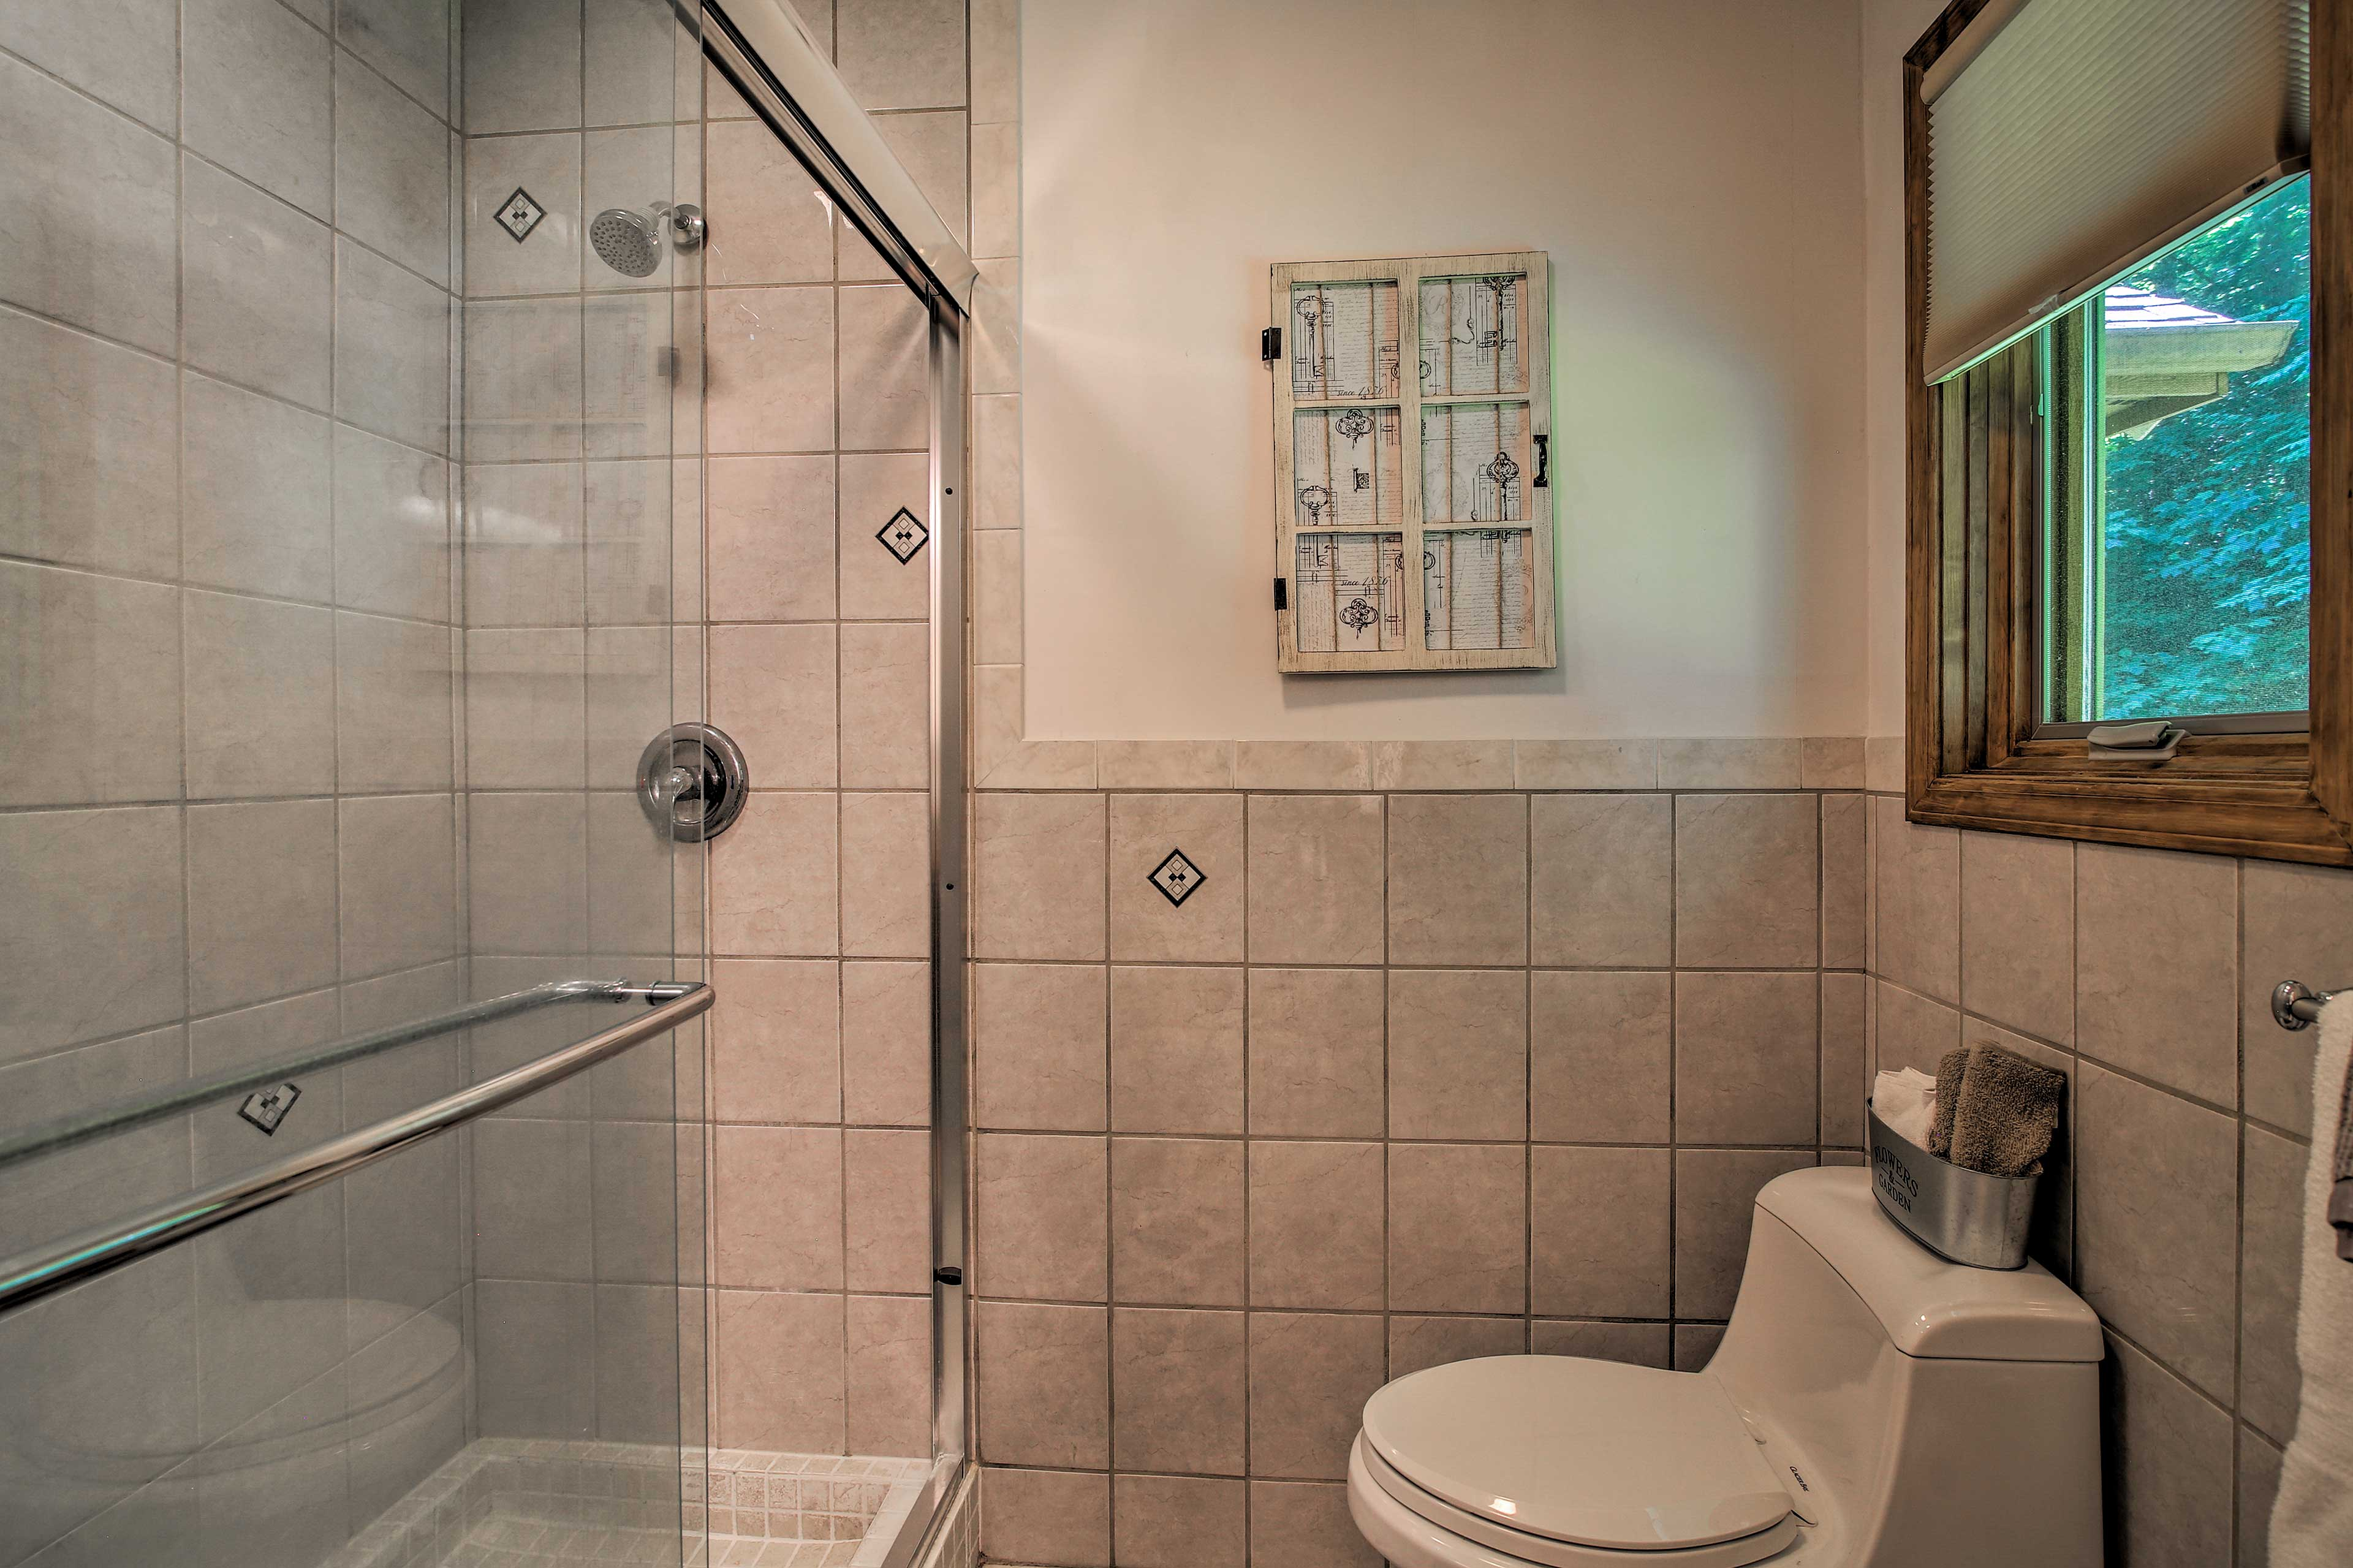 After a day of hiking, you'll relish a hot shower.